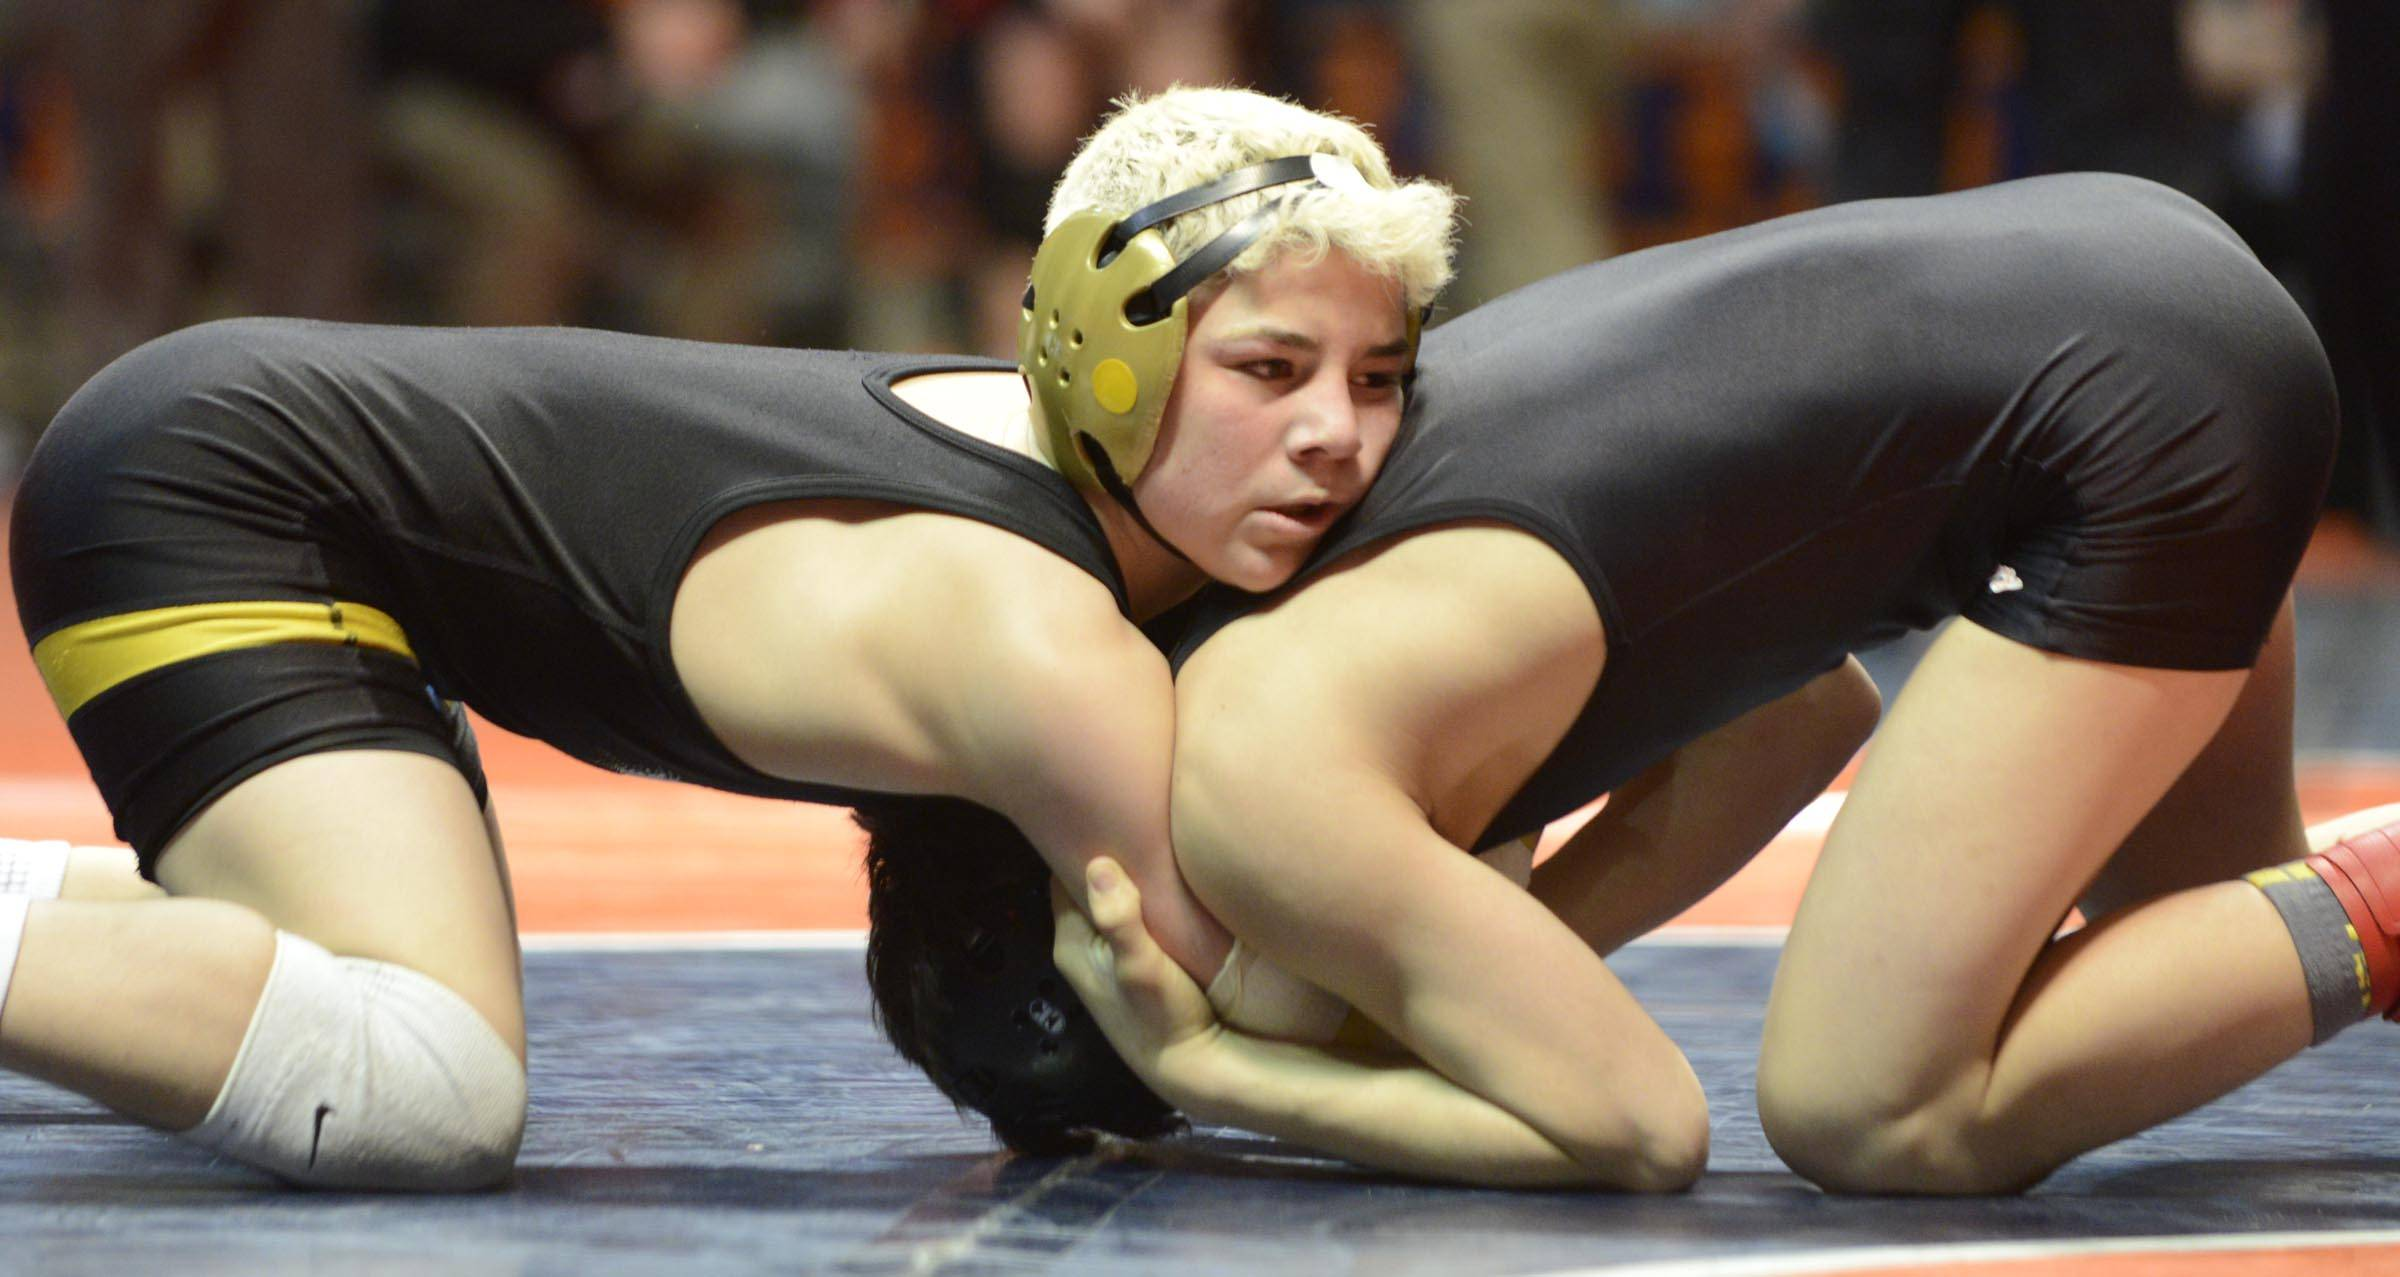 Austin Gomez of Glenbard North High School competes against Rudy Yates of Brother Rice High School Saturday in the 113 -pound weight class third place match of the wrestling IHSA Class 3A state tournament at State Farm Center in Champaign.